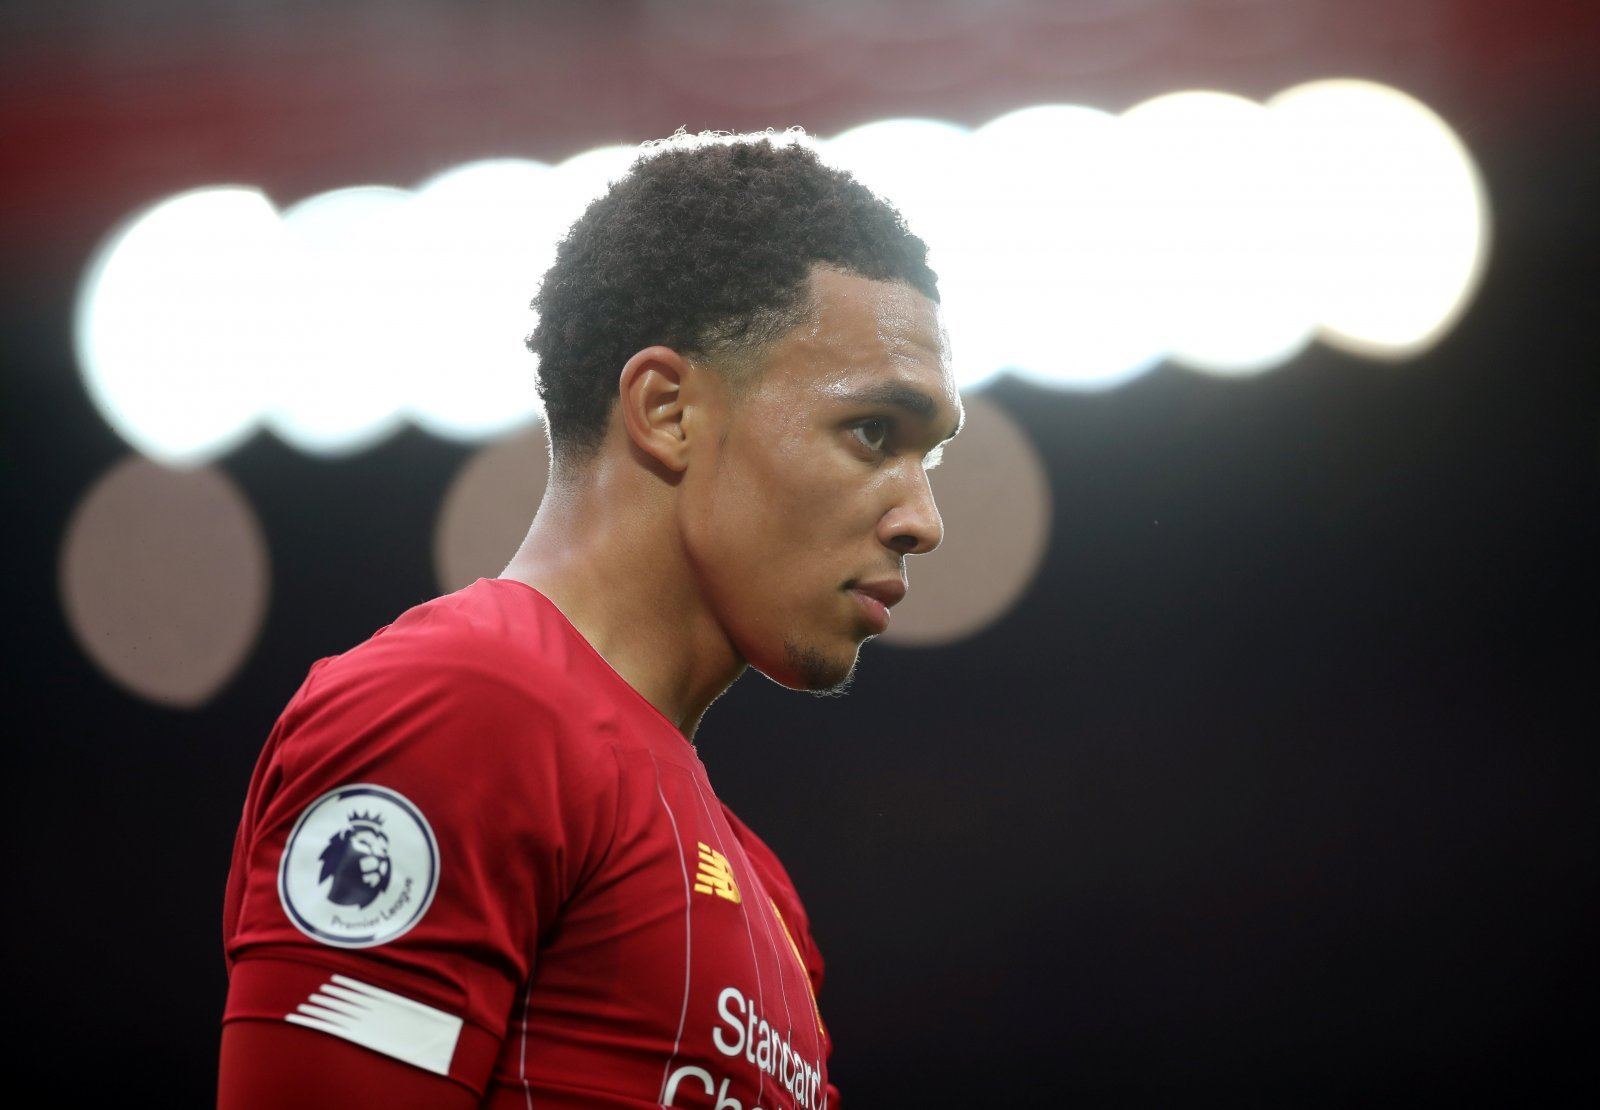 Liverpool: Trent Alexander-Arnold to miss Genk match due to illness